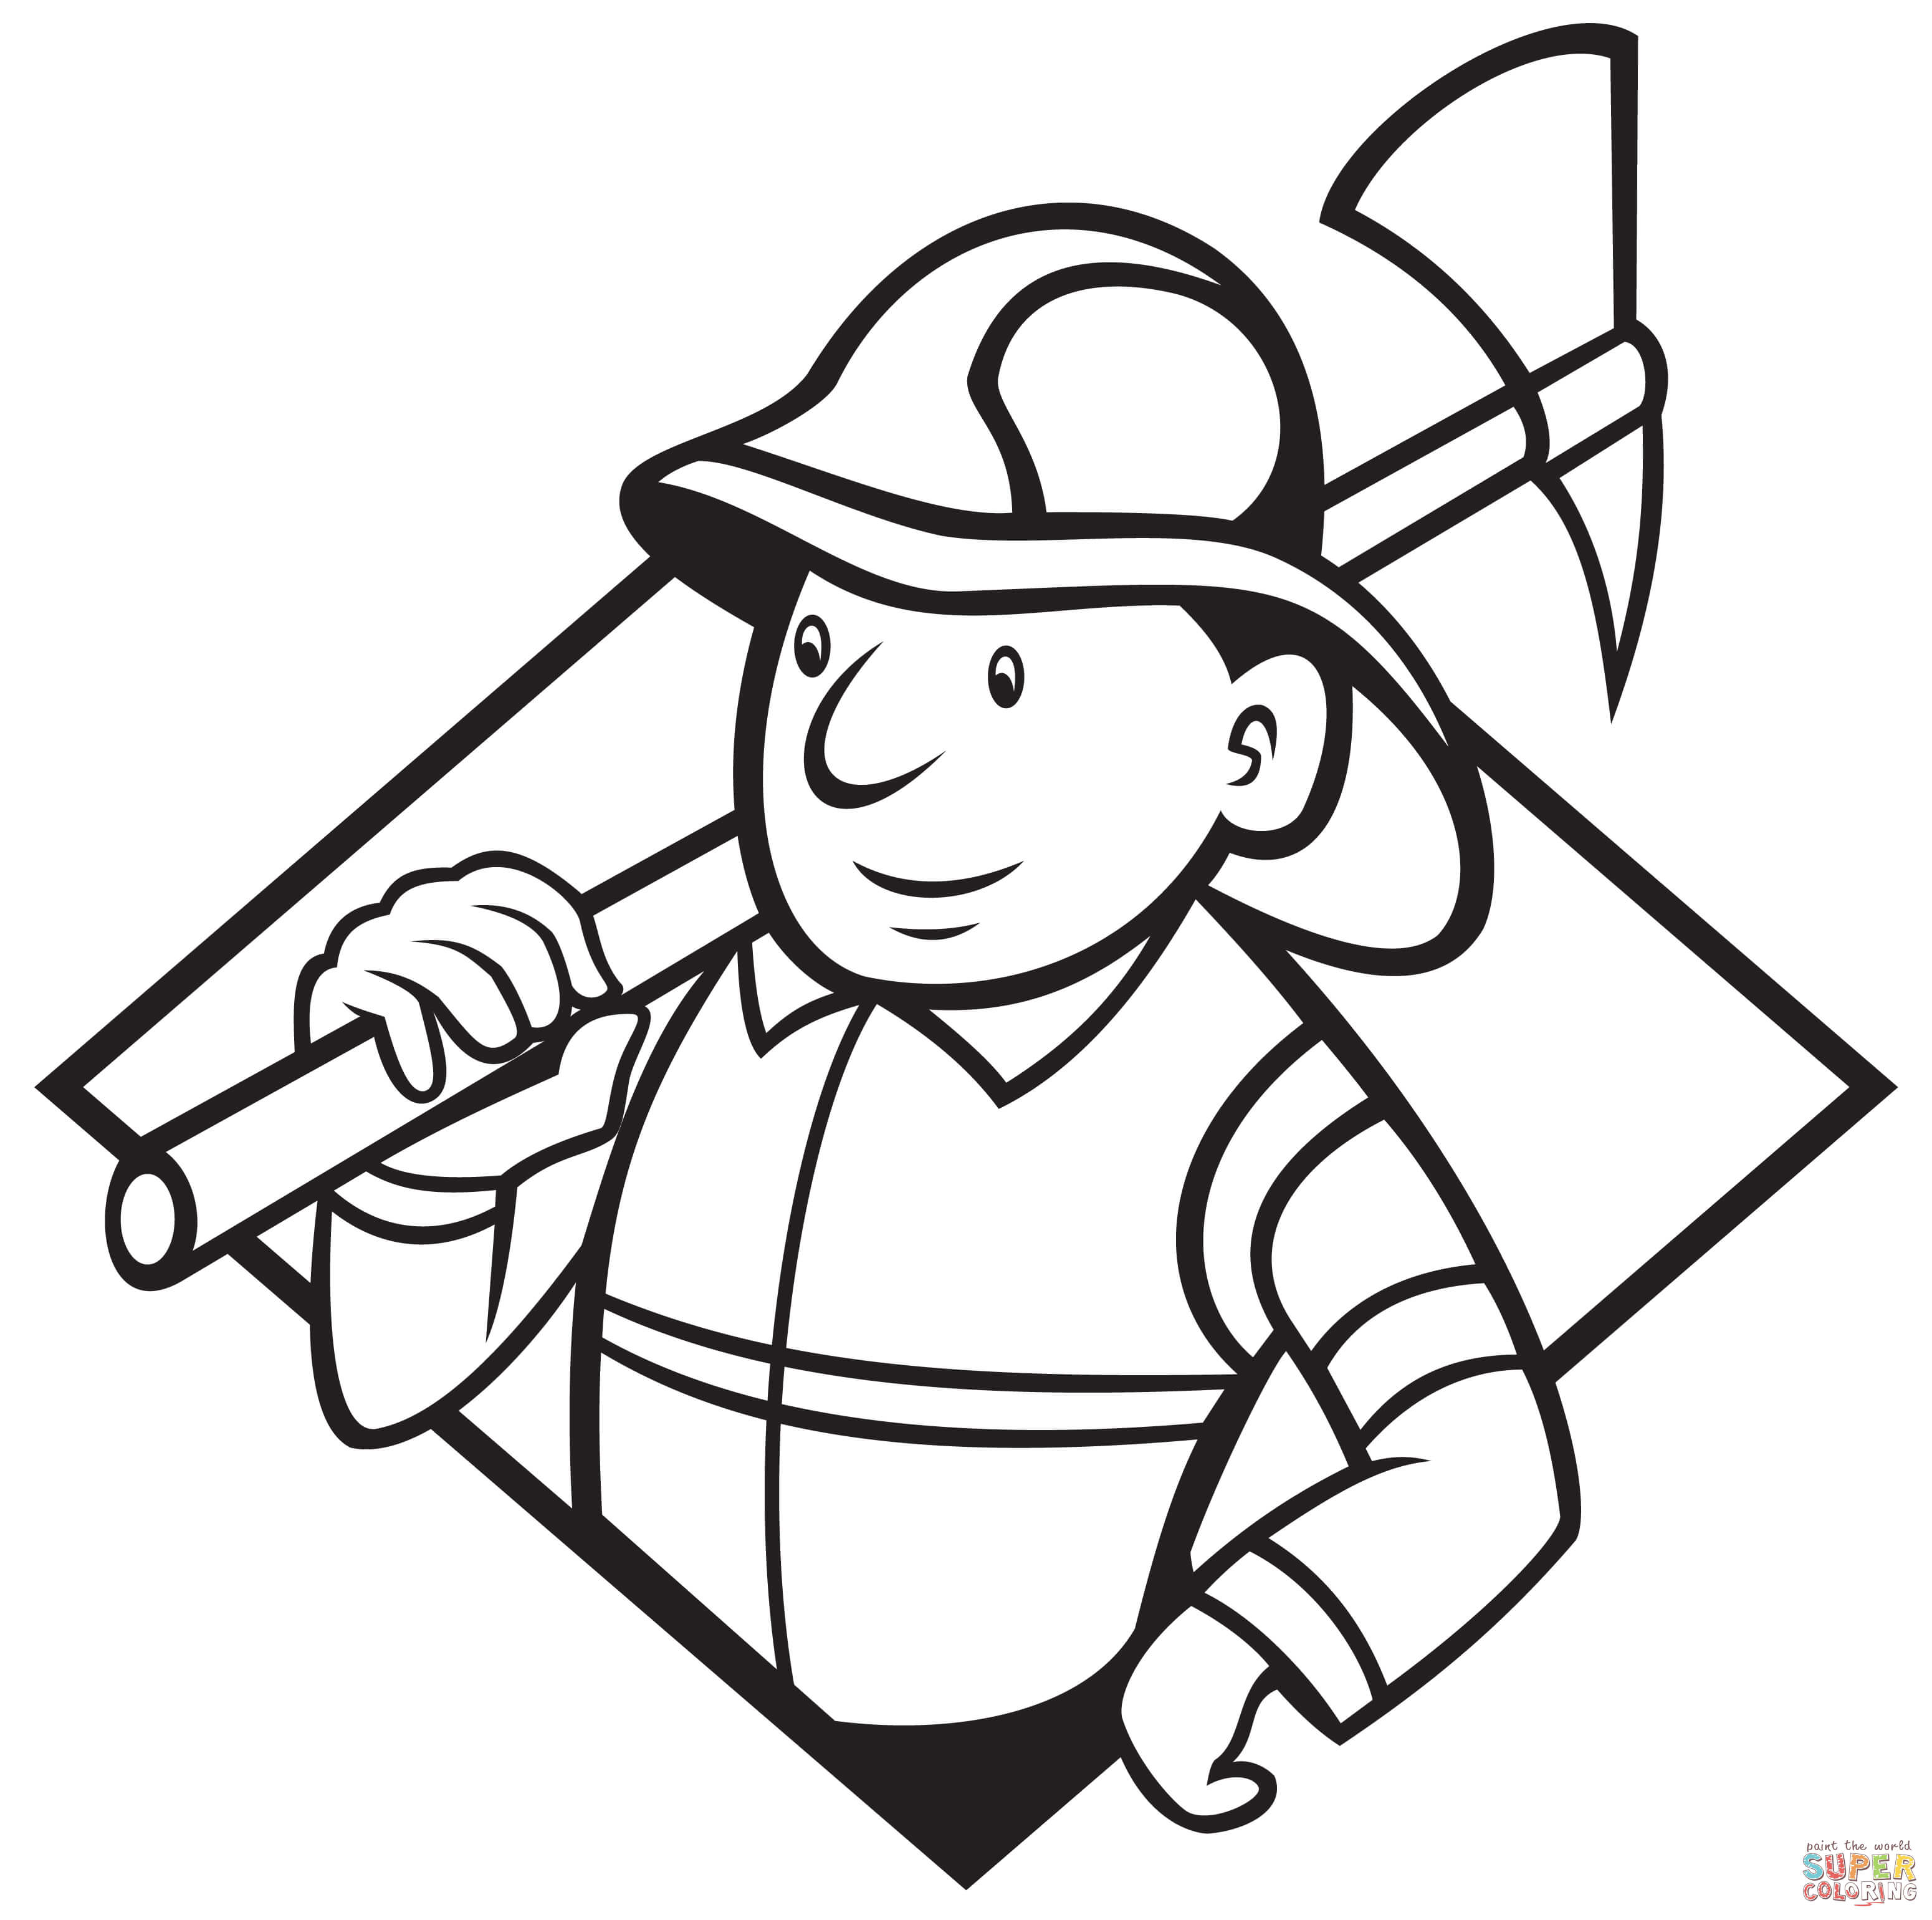 3100x3080 Good Fireman Coloring Pages On Firefighter Fire Fighter Free Tools